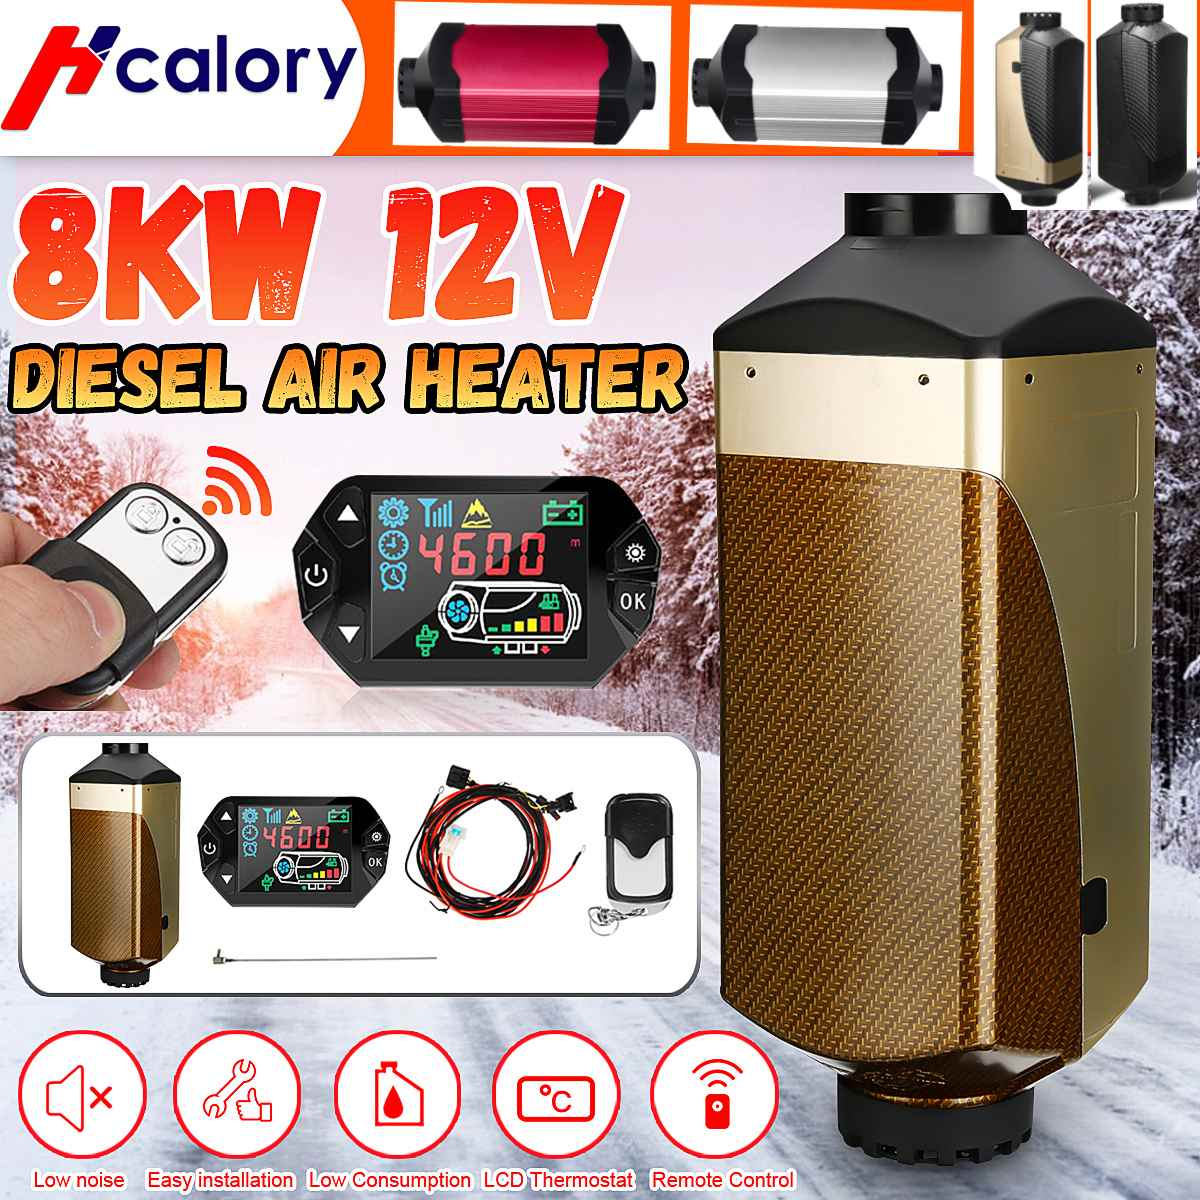 Car Heater Heating 12V 8KW Air Diesel Heater New LCD Display Switch For Webasto Boat Car Van RV Bus- Replace D4 Car Heater